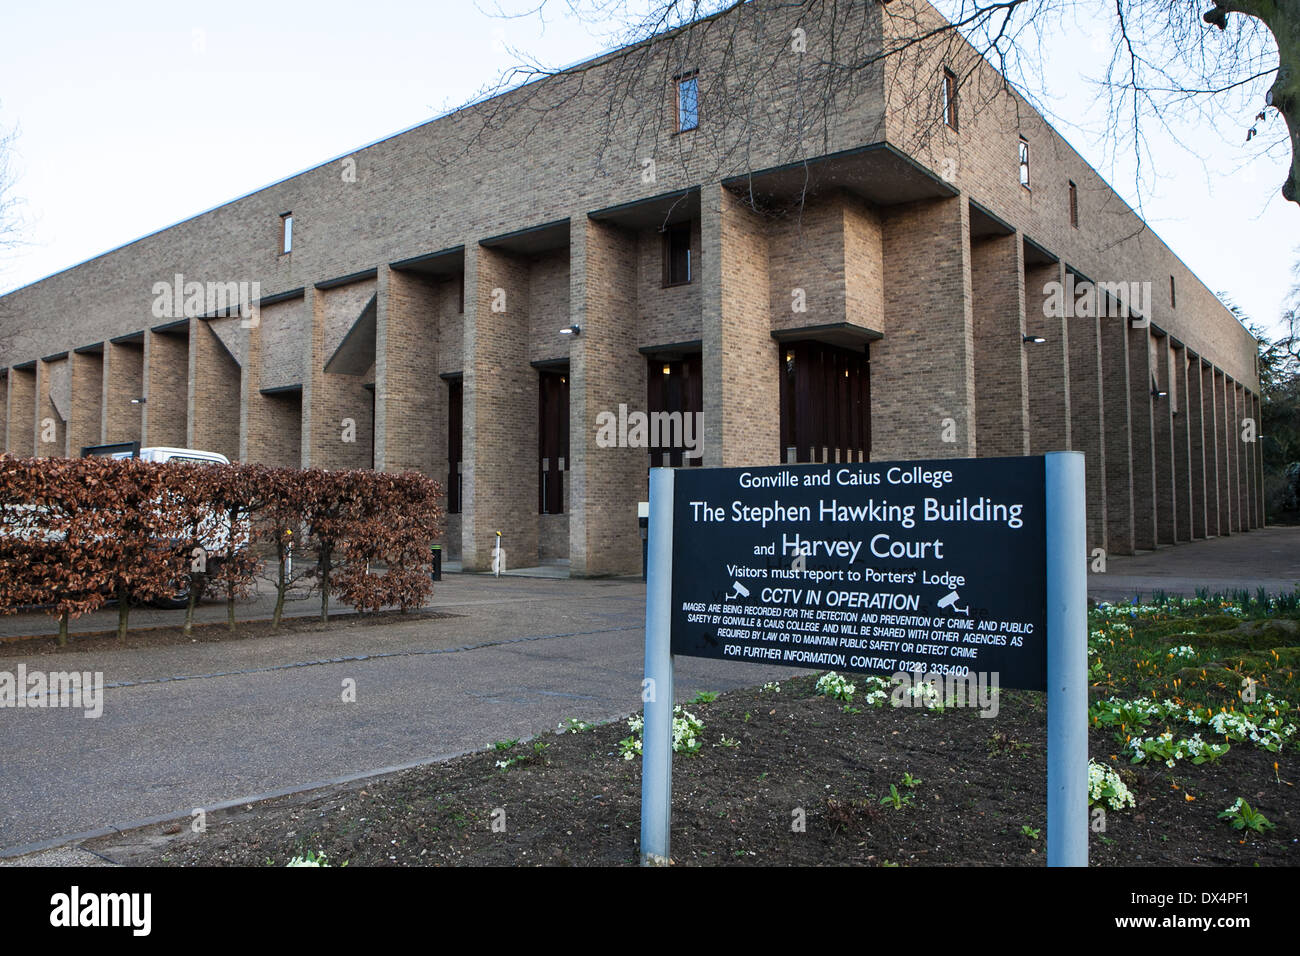 The Stephen Hawking Building  at the Gonville and Caius College Newnham Village, Cambridge University Stock Photo